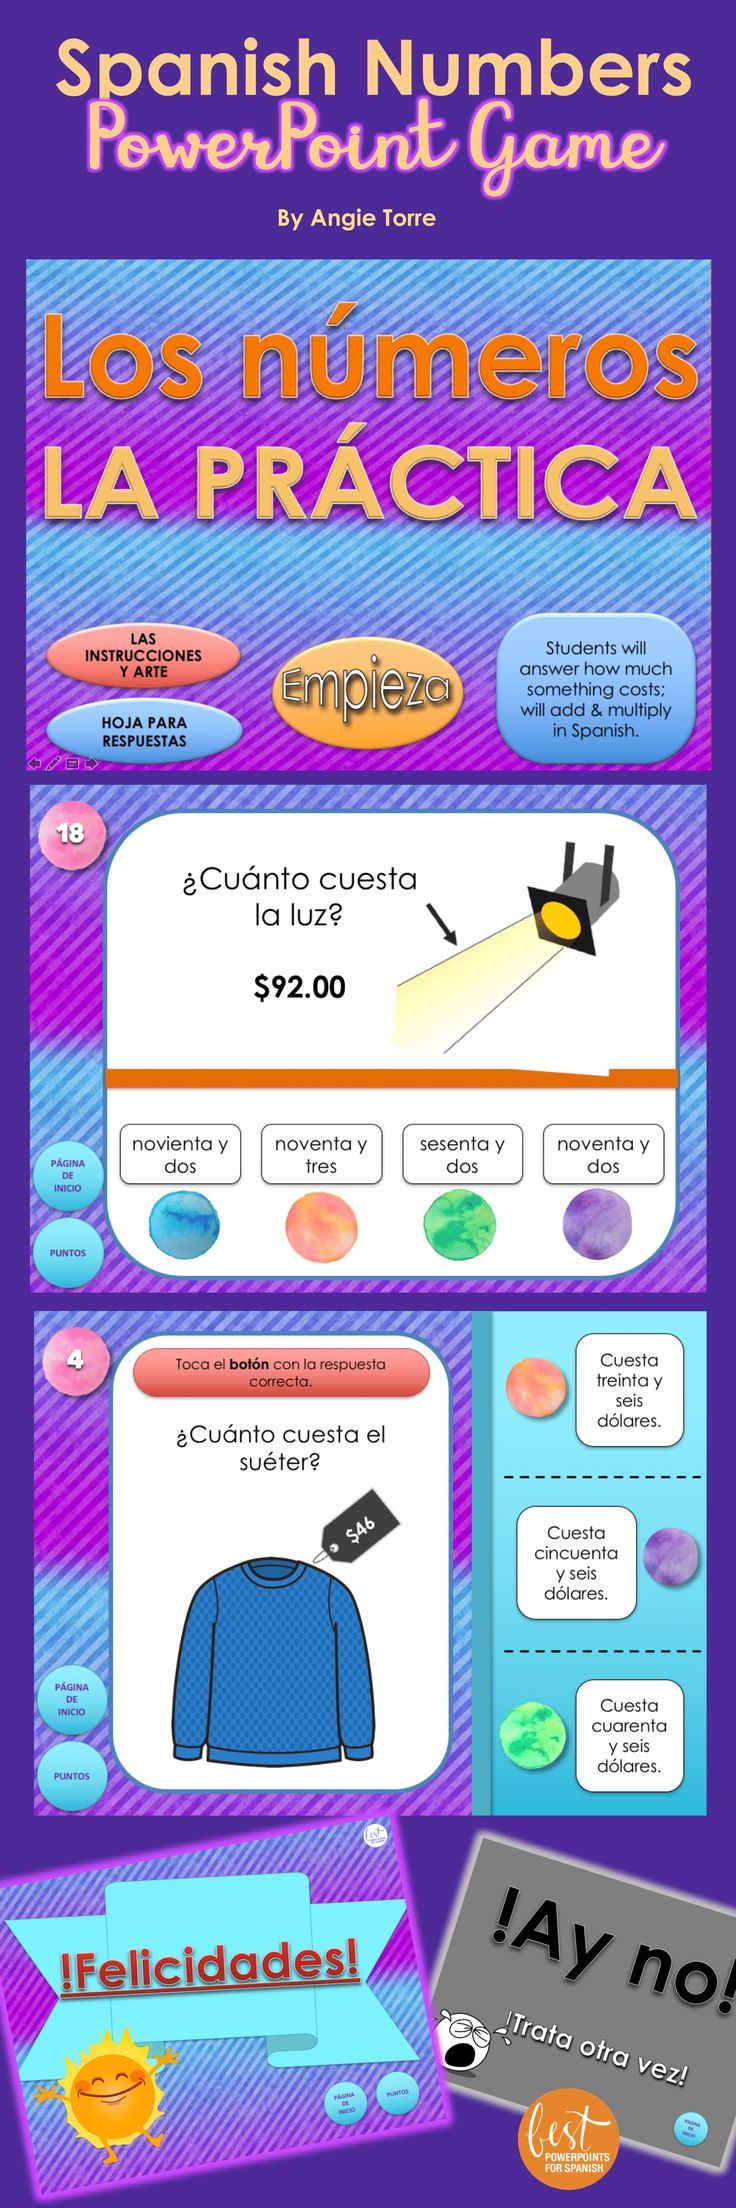 Have you tried Interactive PowerPoint Games yet?  This is a super-fun game that corrects itself so no correcting for you.  It's a great way for students to practice their numbers while using technology.  The game provides comprehensible input but and not only assesses recognition but also spelling.  Click here to see a short video of how it's played.